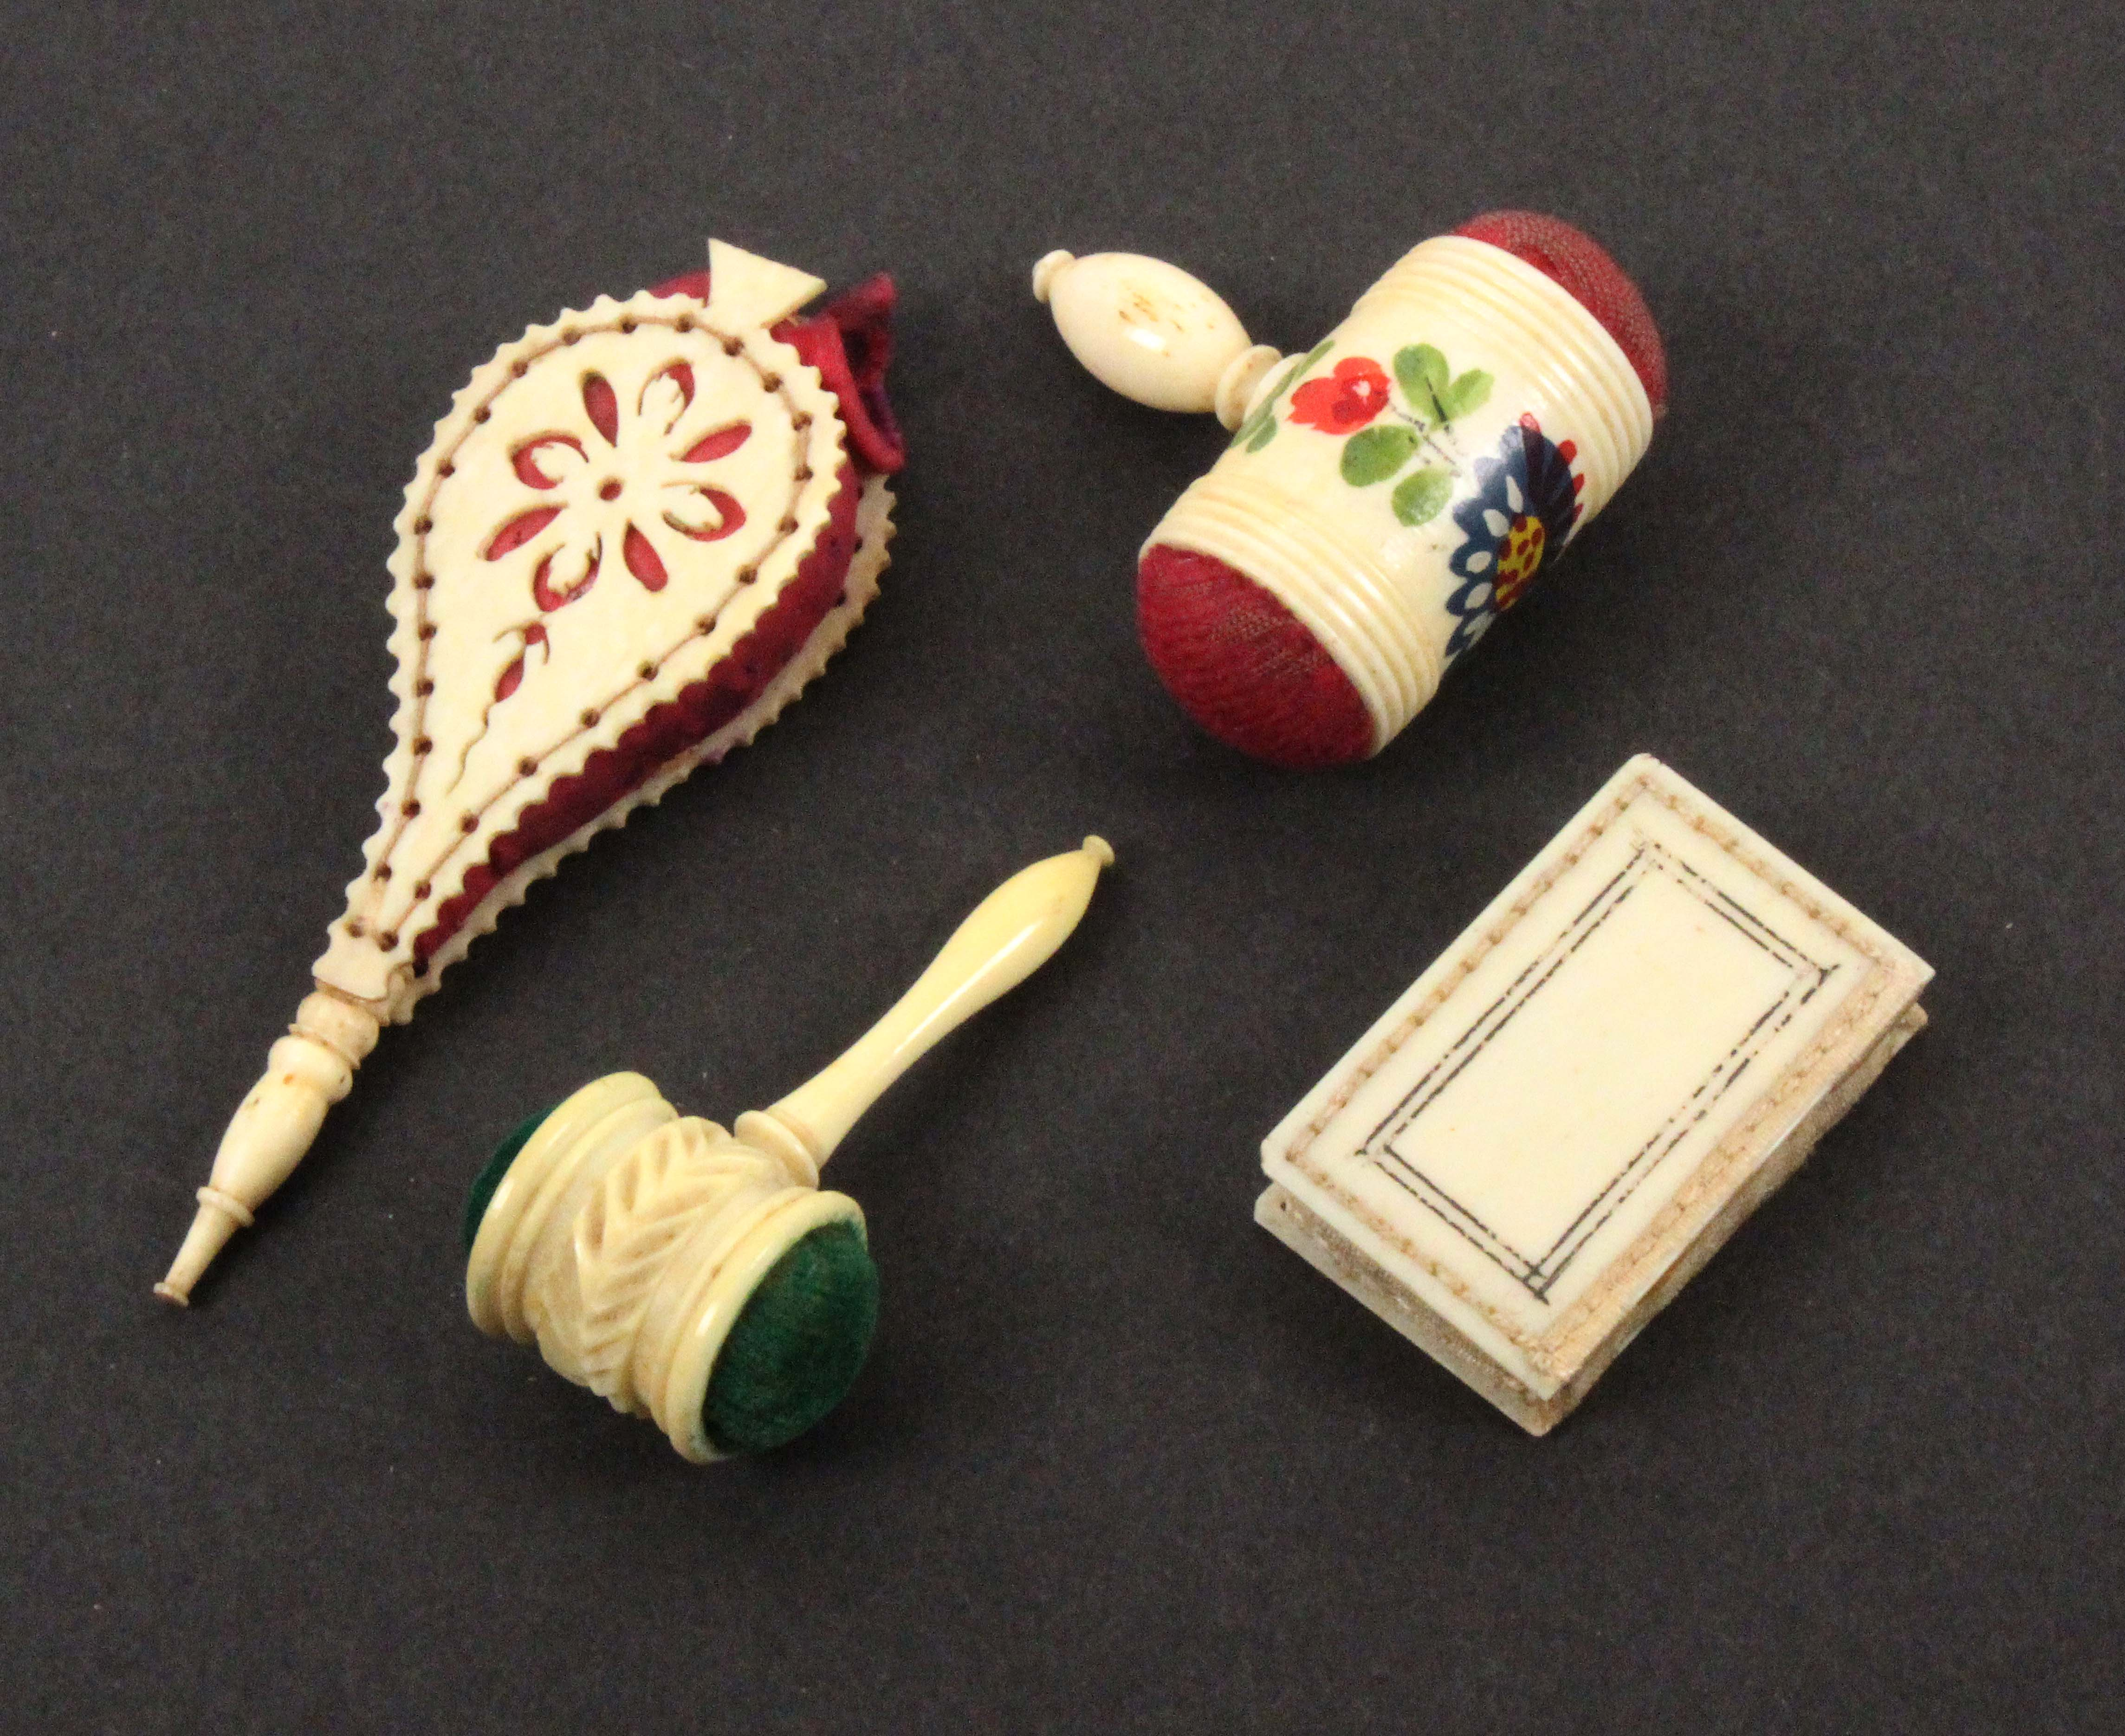 Four 19th Century ivory and bone pin cushions, comprising two gavel form examples, one with floral